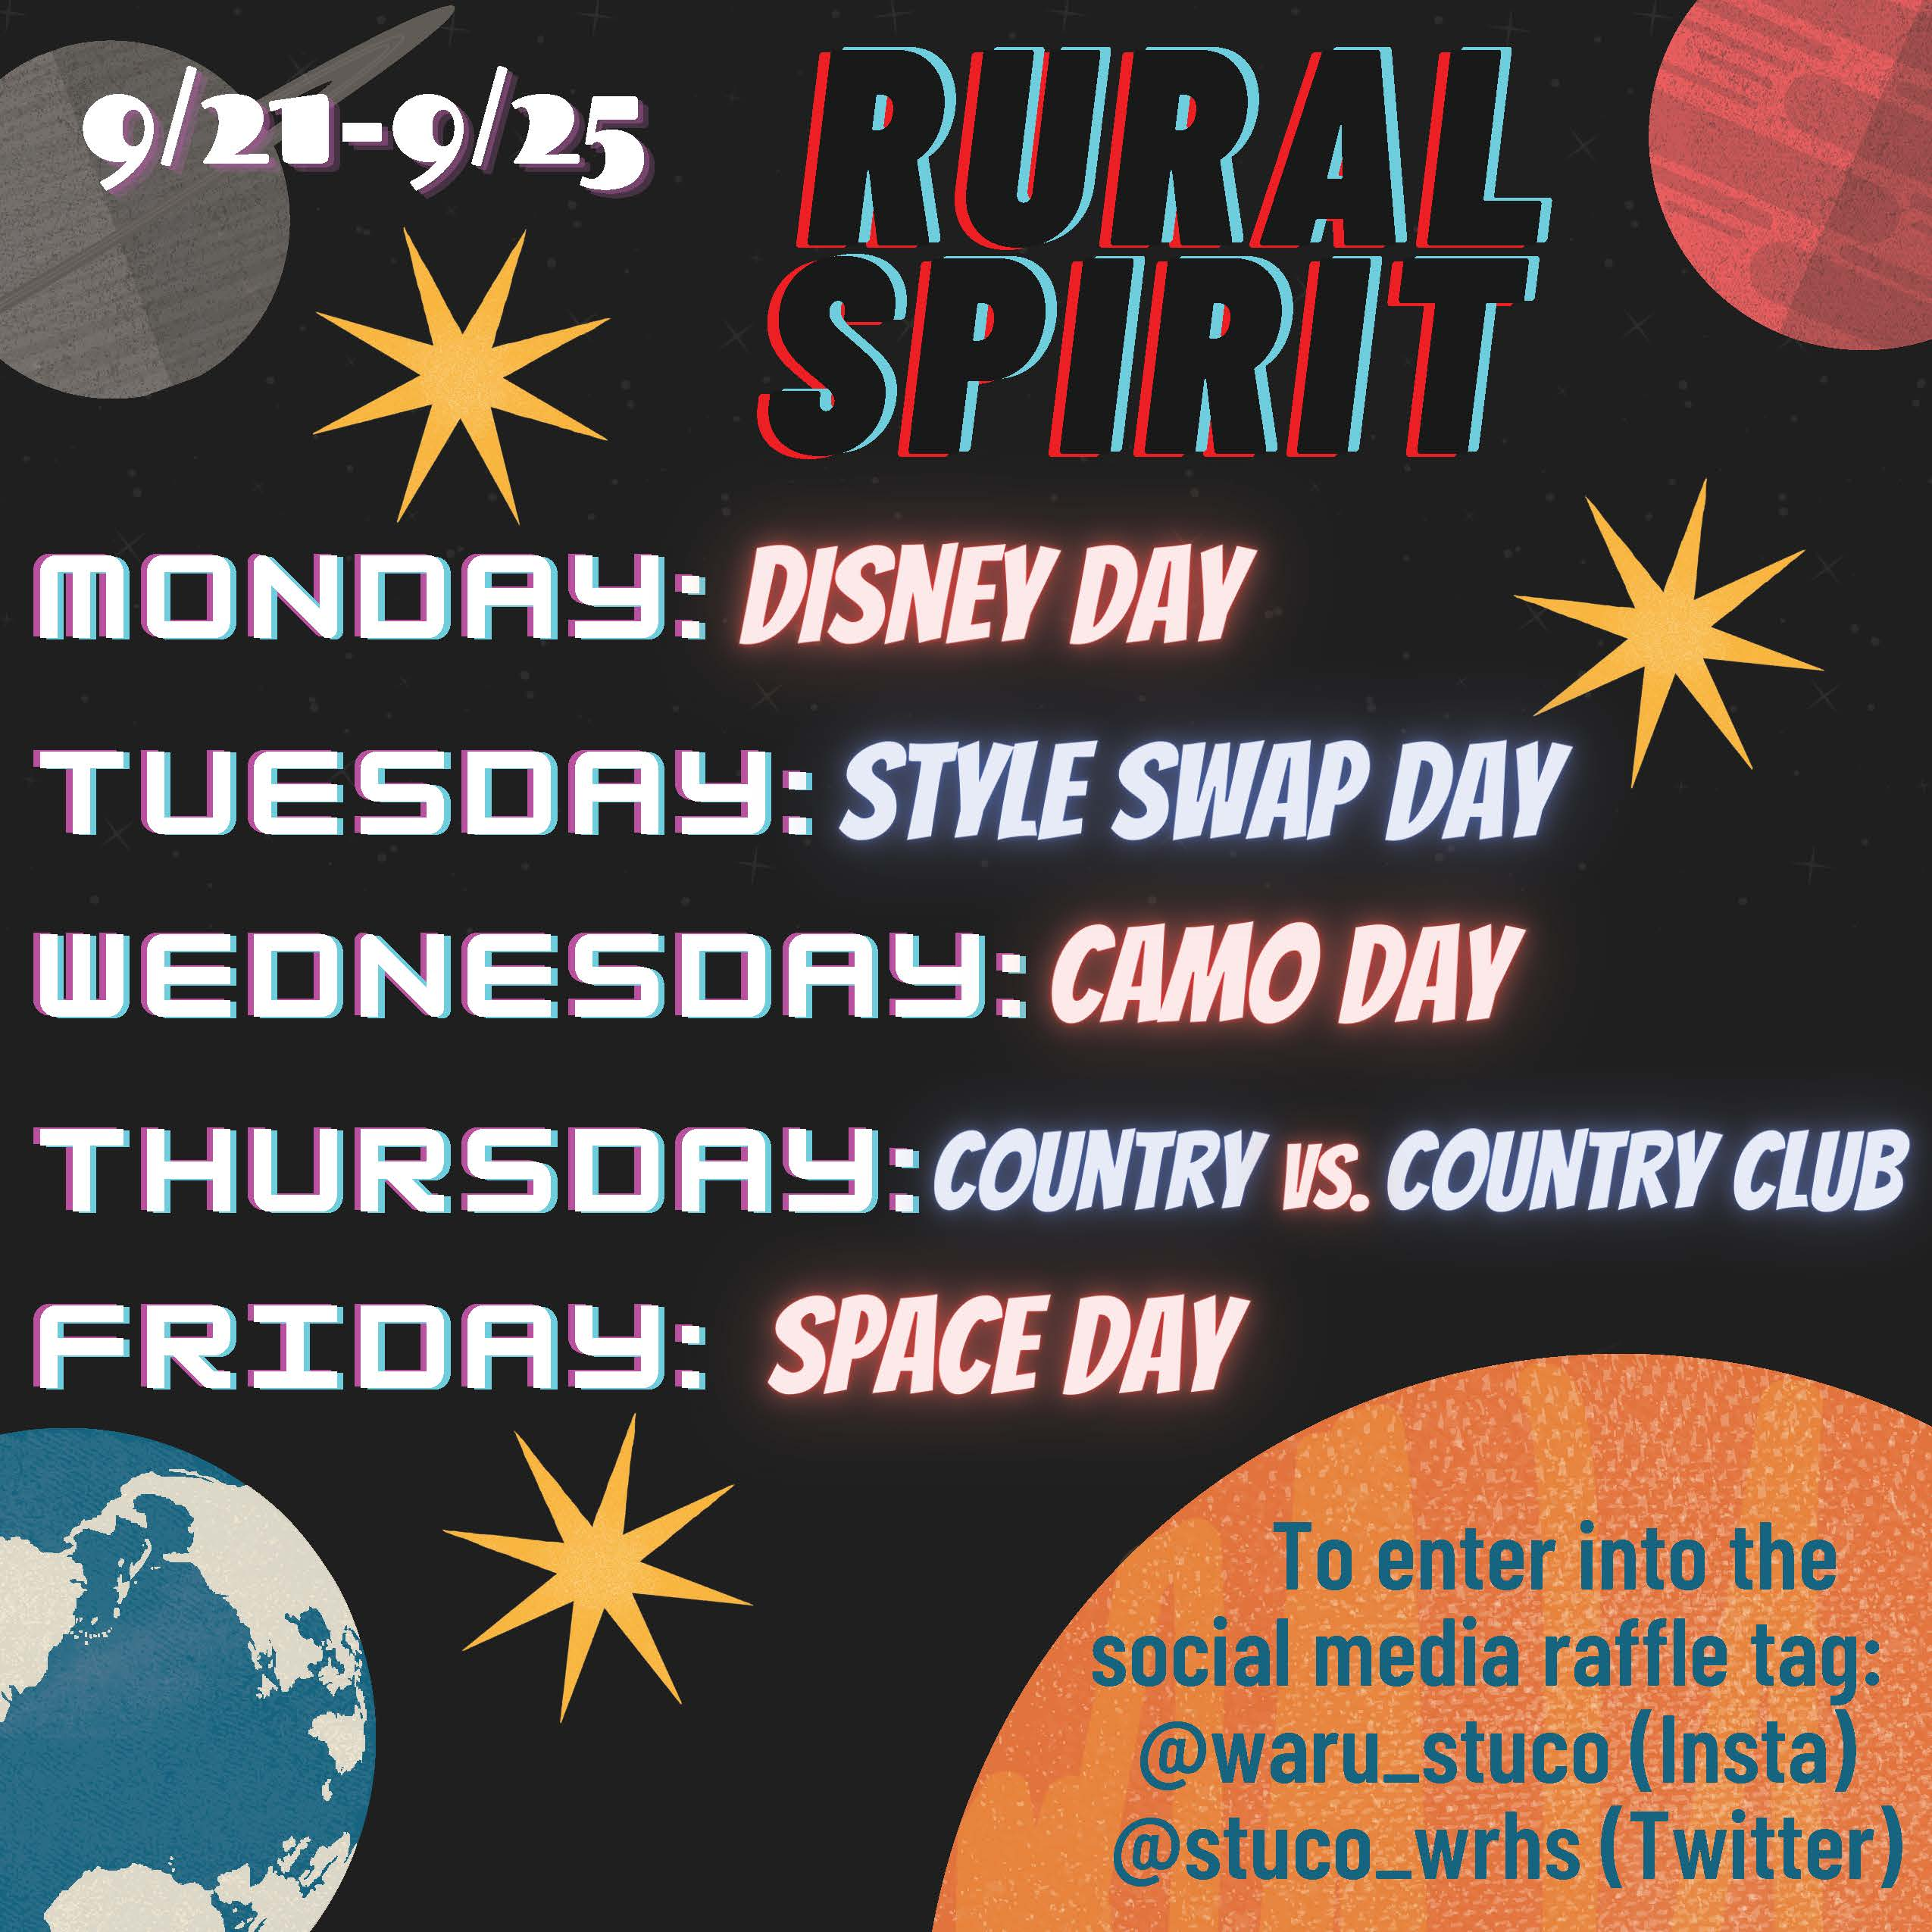 Monday: Disney Day. Tuesday: Style Swap Day. Wednesday: Camo Day. Thursday: Country vs. Country Club. Friday: Space Day.